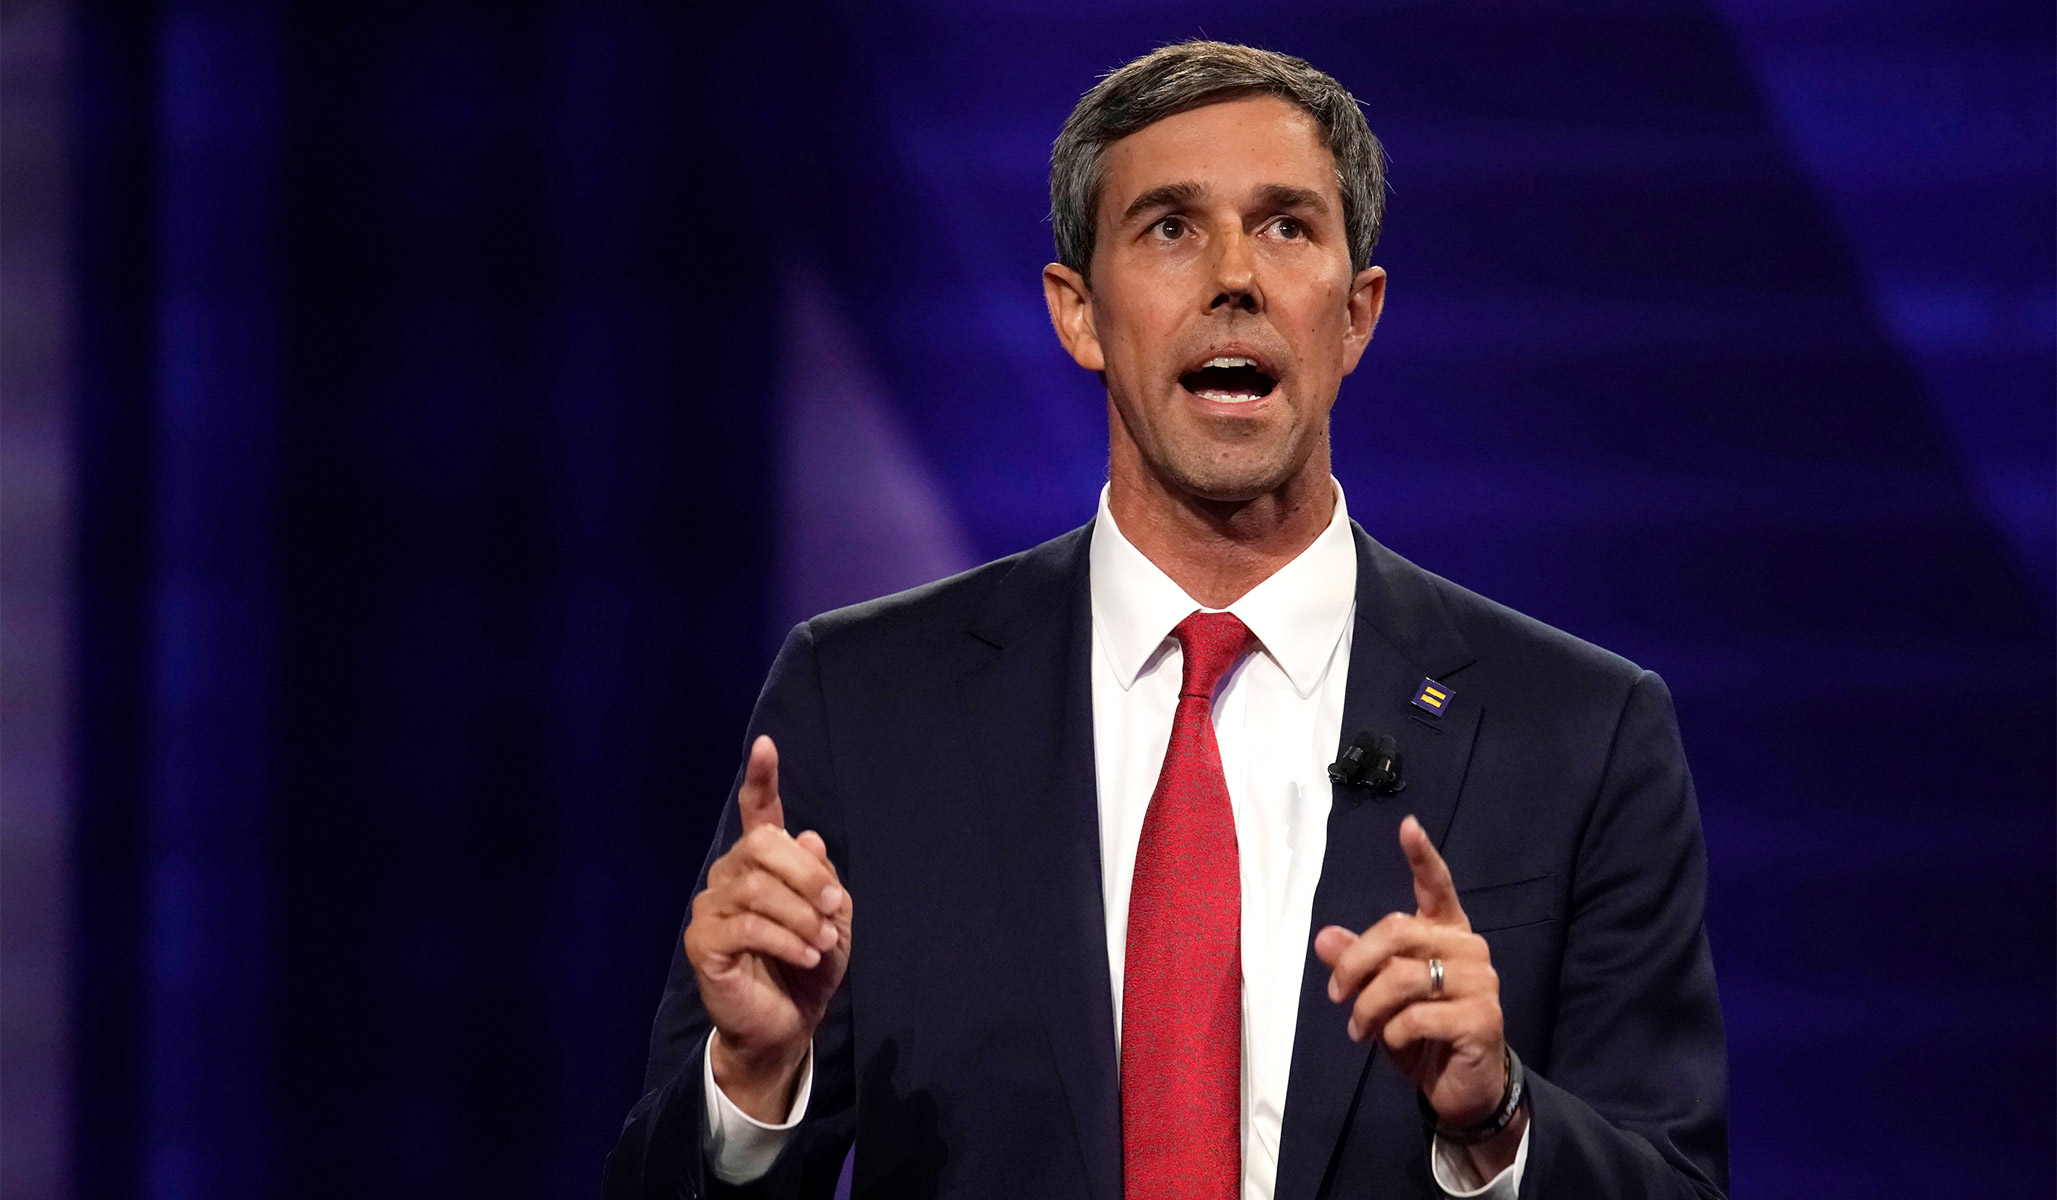 Beto O'Rourke Calls for Stripping Churches of Tax-Exempt Status If They 'Oppose Same-Sex Marriage'